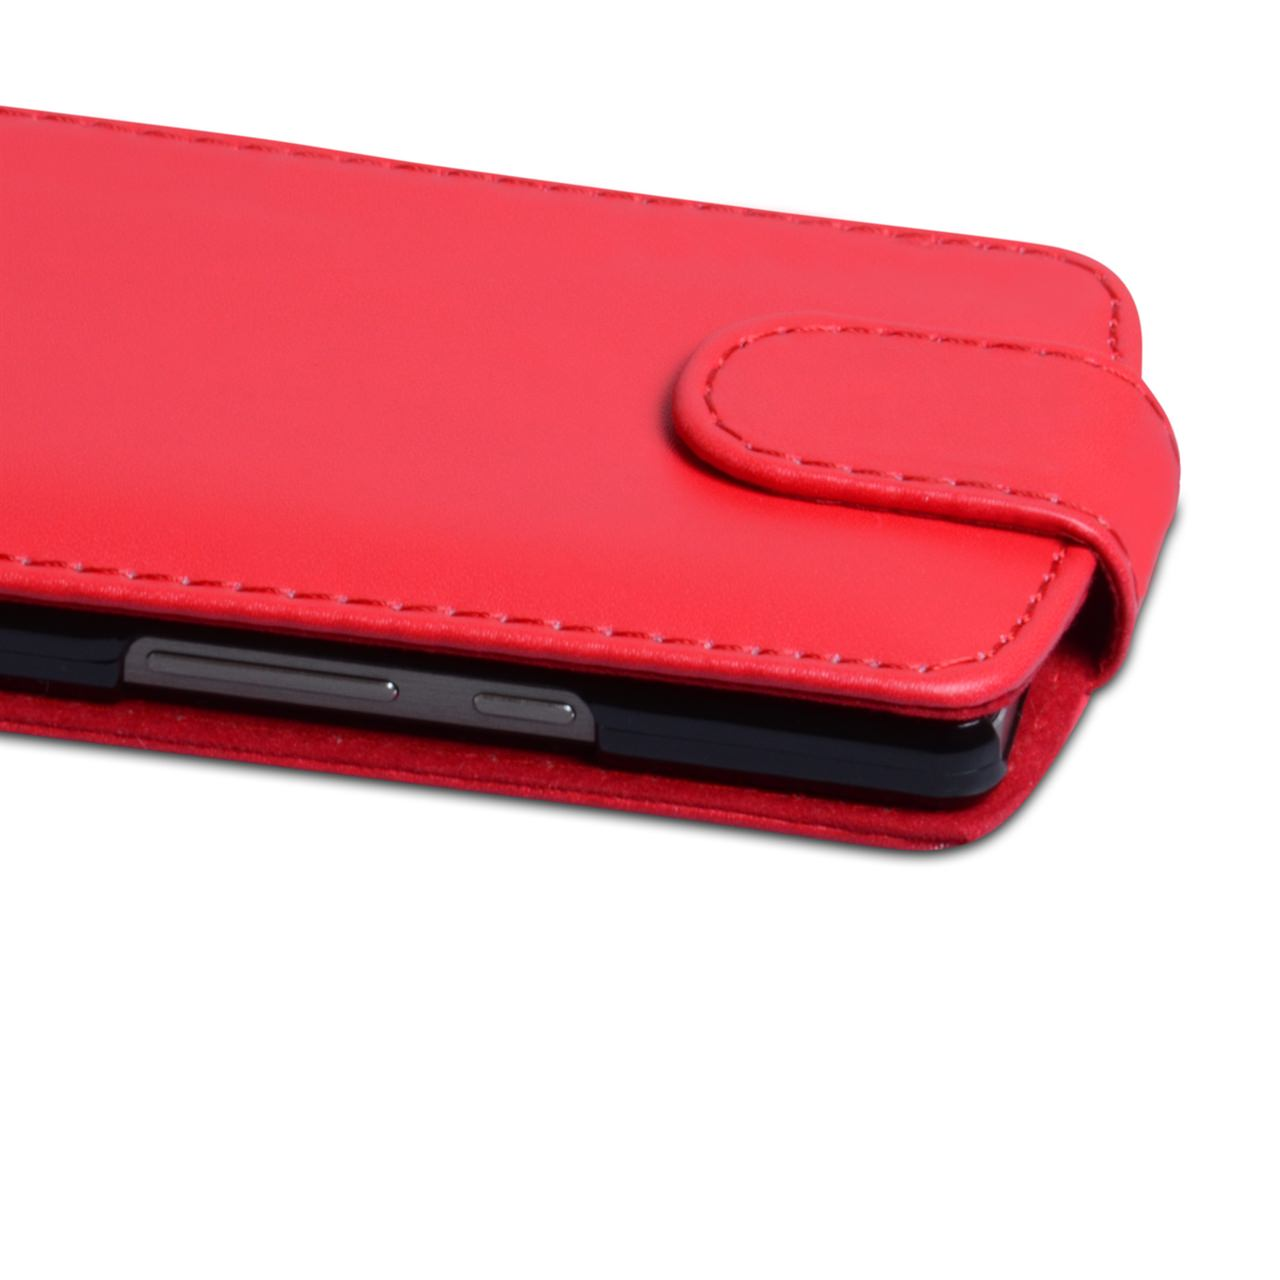 YouSave Accessories Huawei Ascend P6 Leather-Effect Flip Case - Red